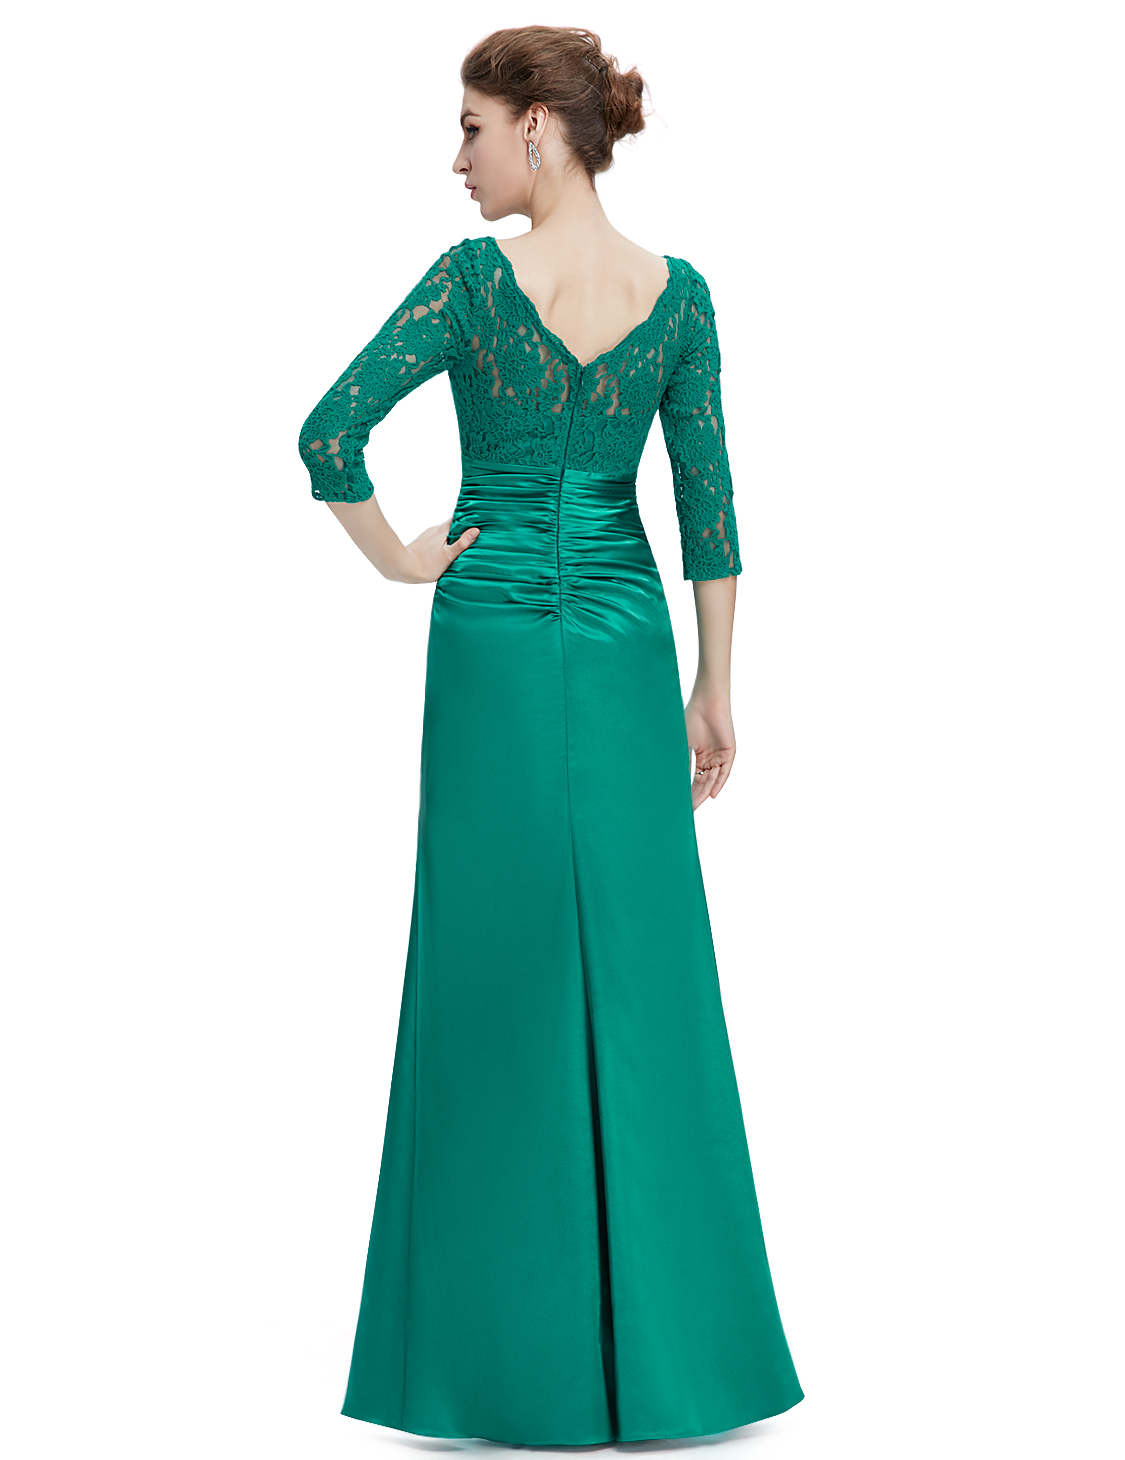 Women\'s Elegant Lace Half-sleeve Formal Evening Party Dresses 09882 ...